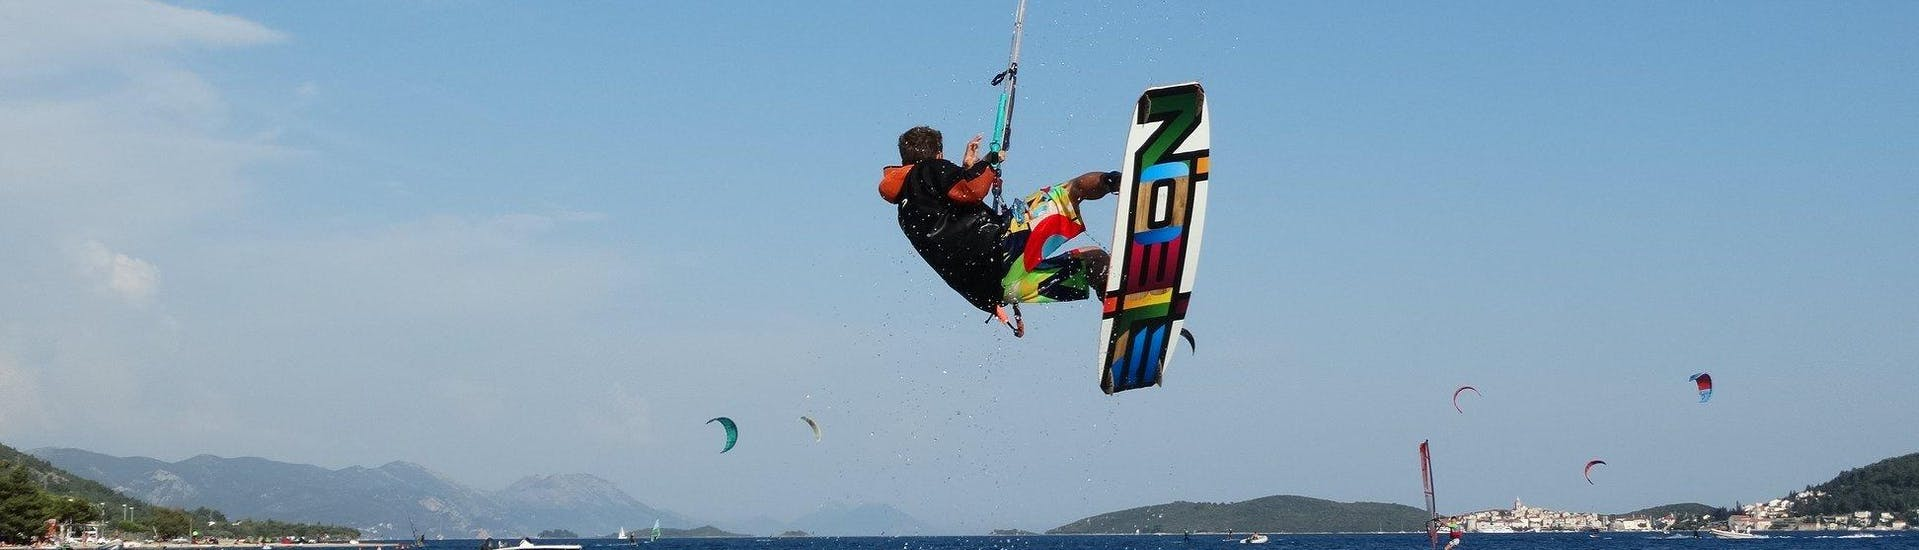 Private Kitesurfing Lessons for All Levels